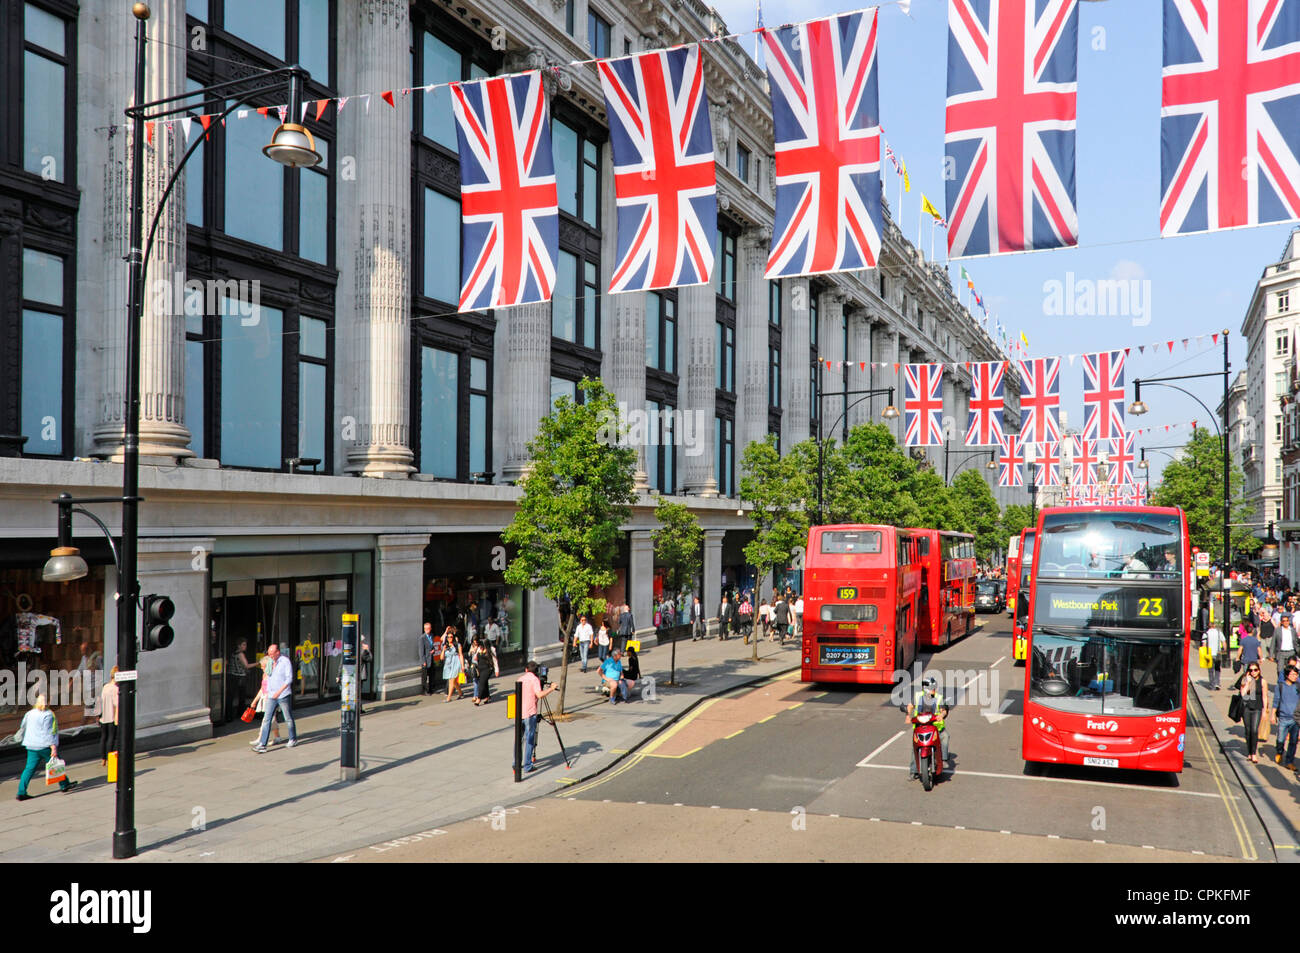 Oxford Street Union Jack Flags Queens Jubilee 2012 Olympics celebrations buses outside Selfridges shopping department store West End London England UK Stock Photo